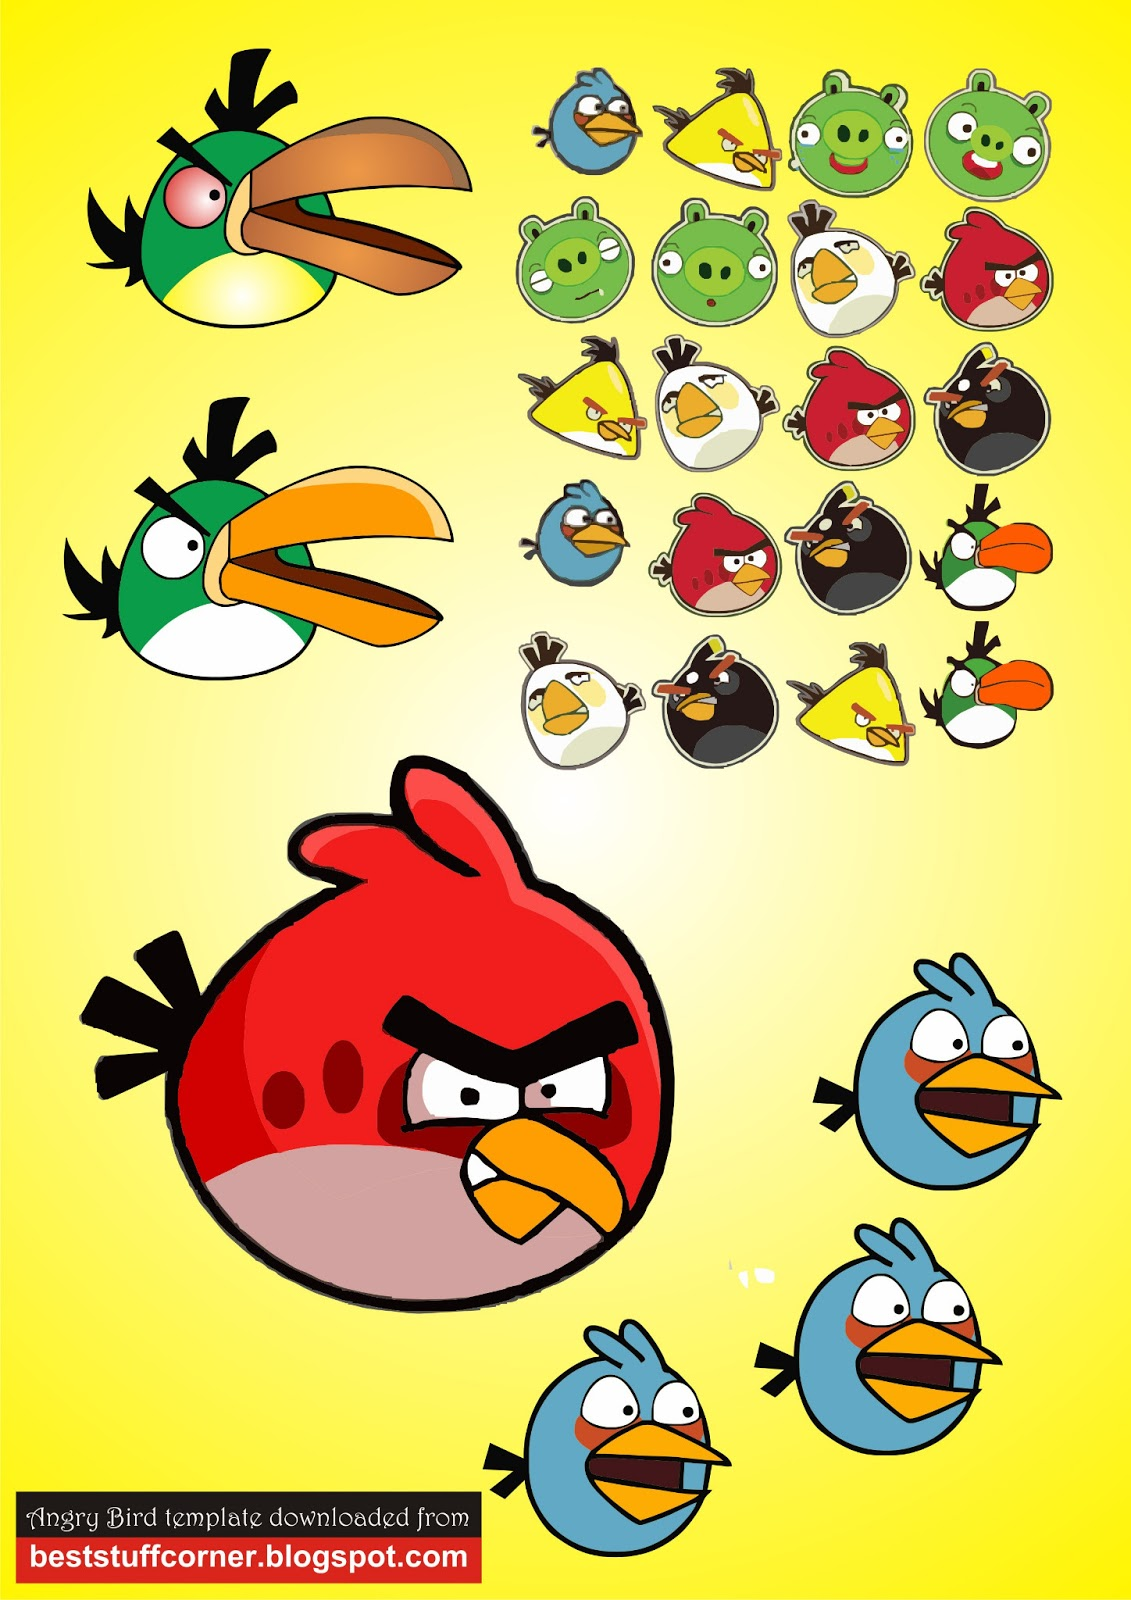 best stuff corner free angry bird vector image template